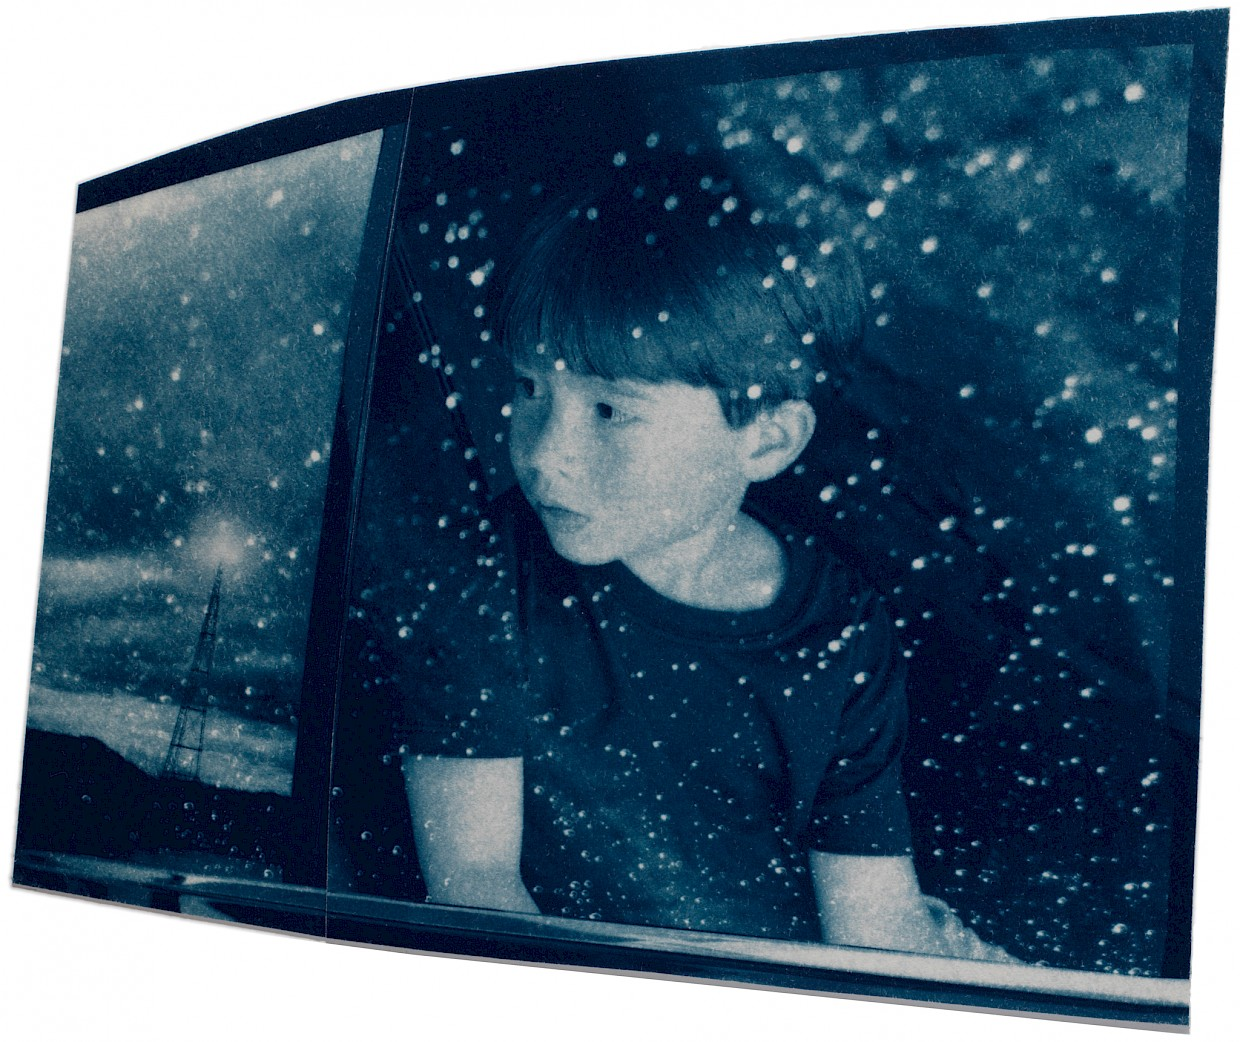 young boy looking outside of car window while it is raining